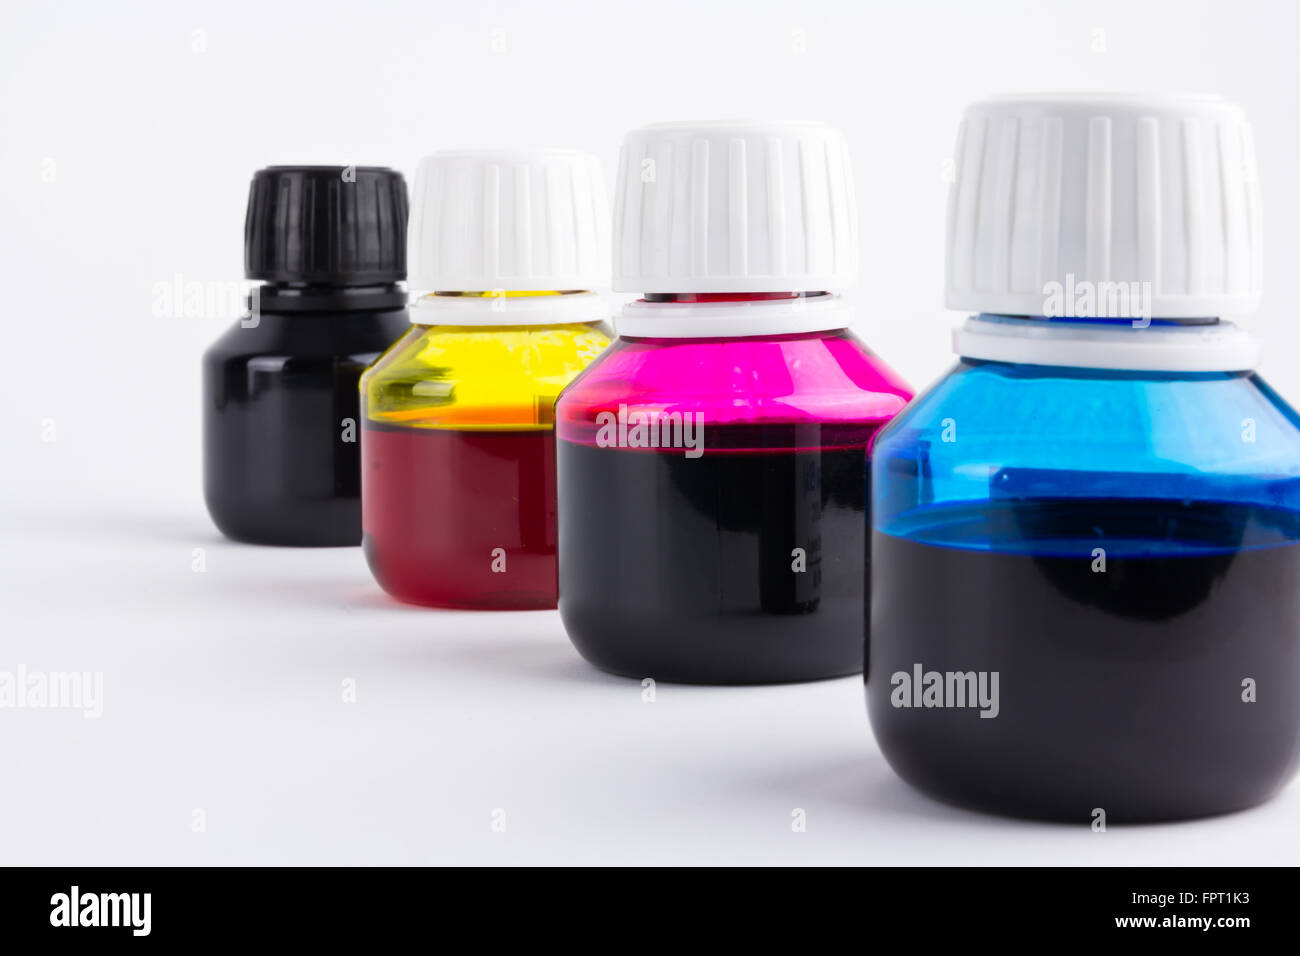 cyan, magenta, yellow and black inkjet refill colors in bottles - Stock Image